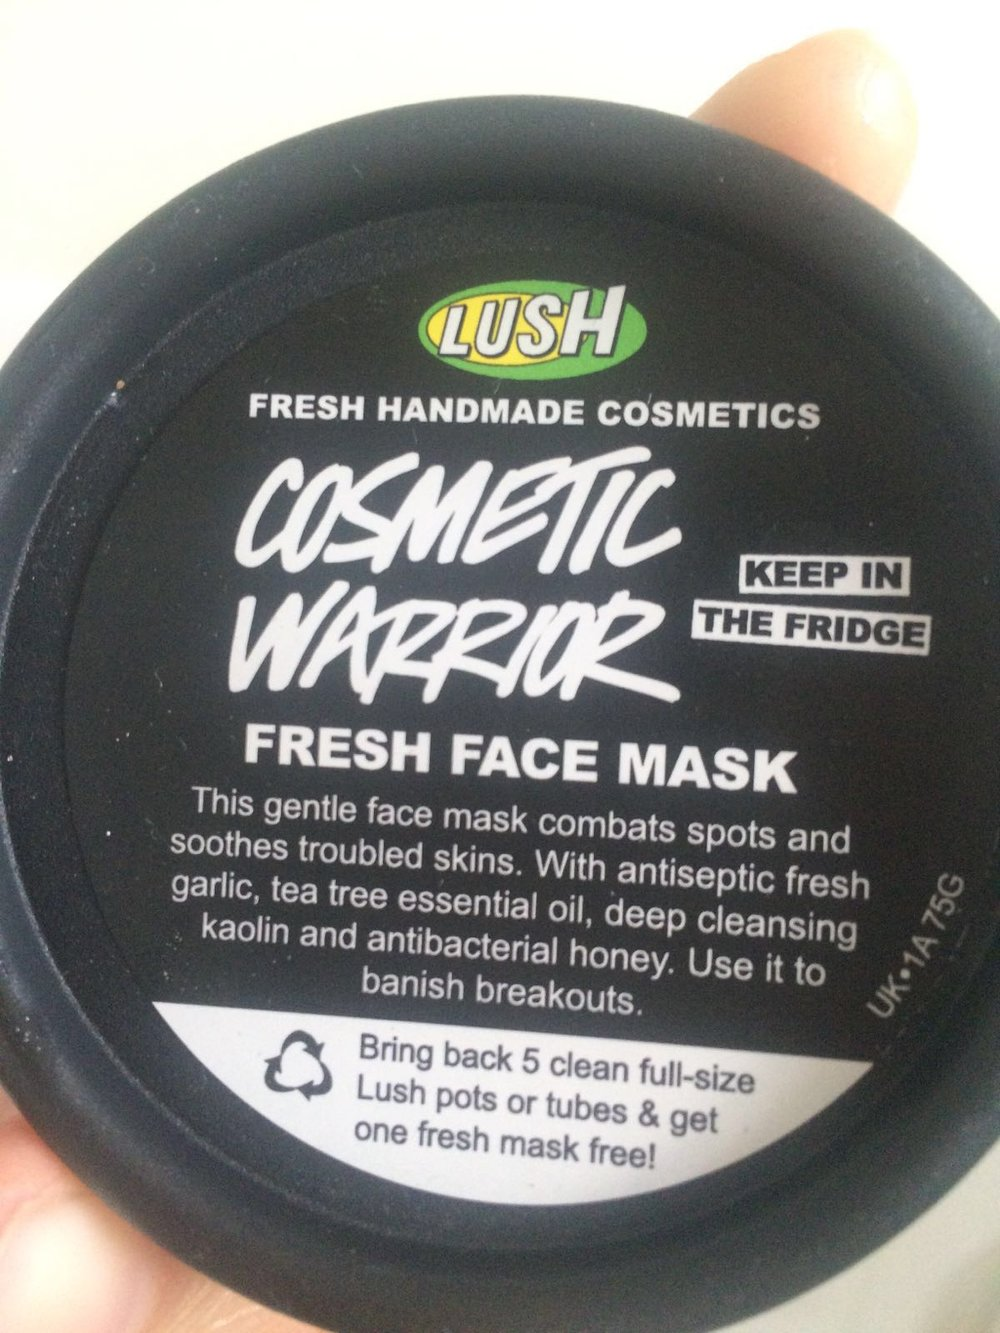 cosmetic warrior lush.jpg